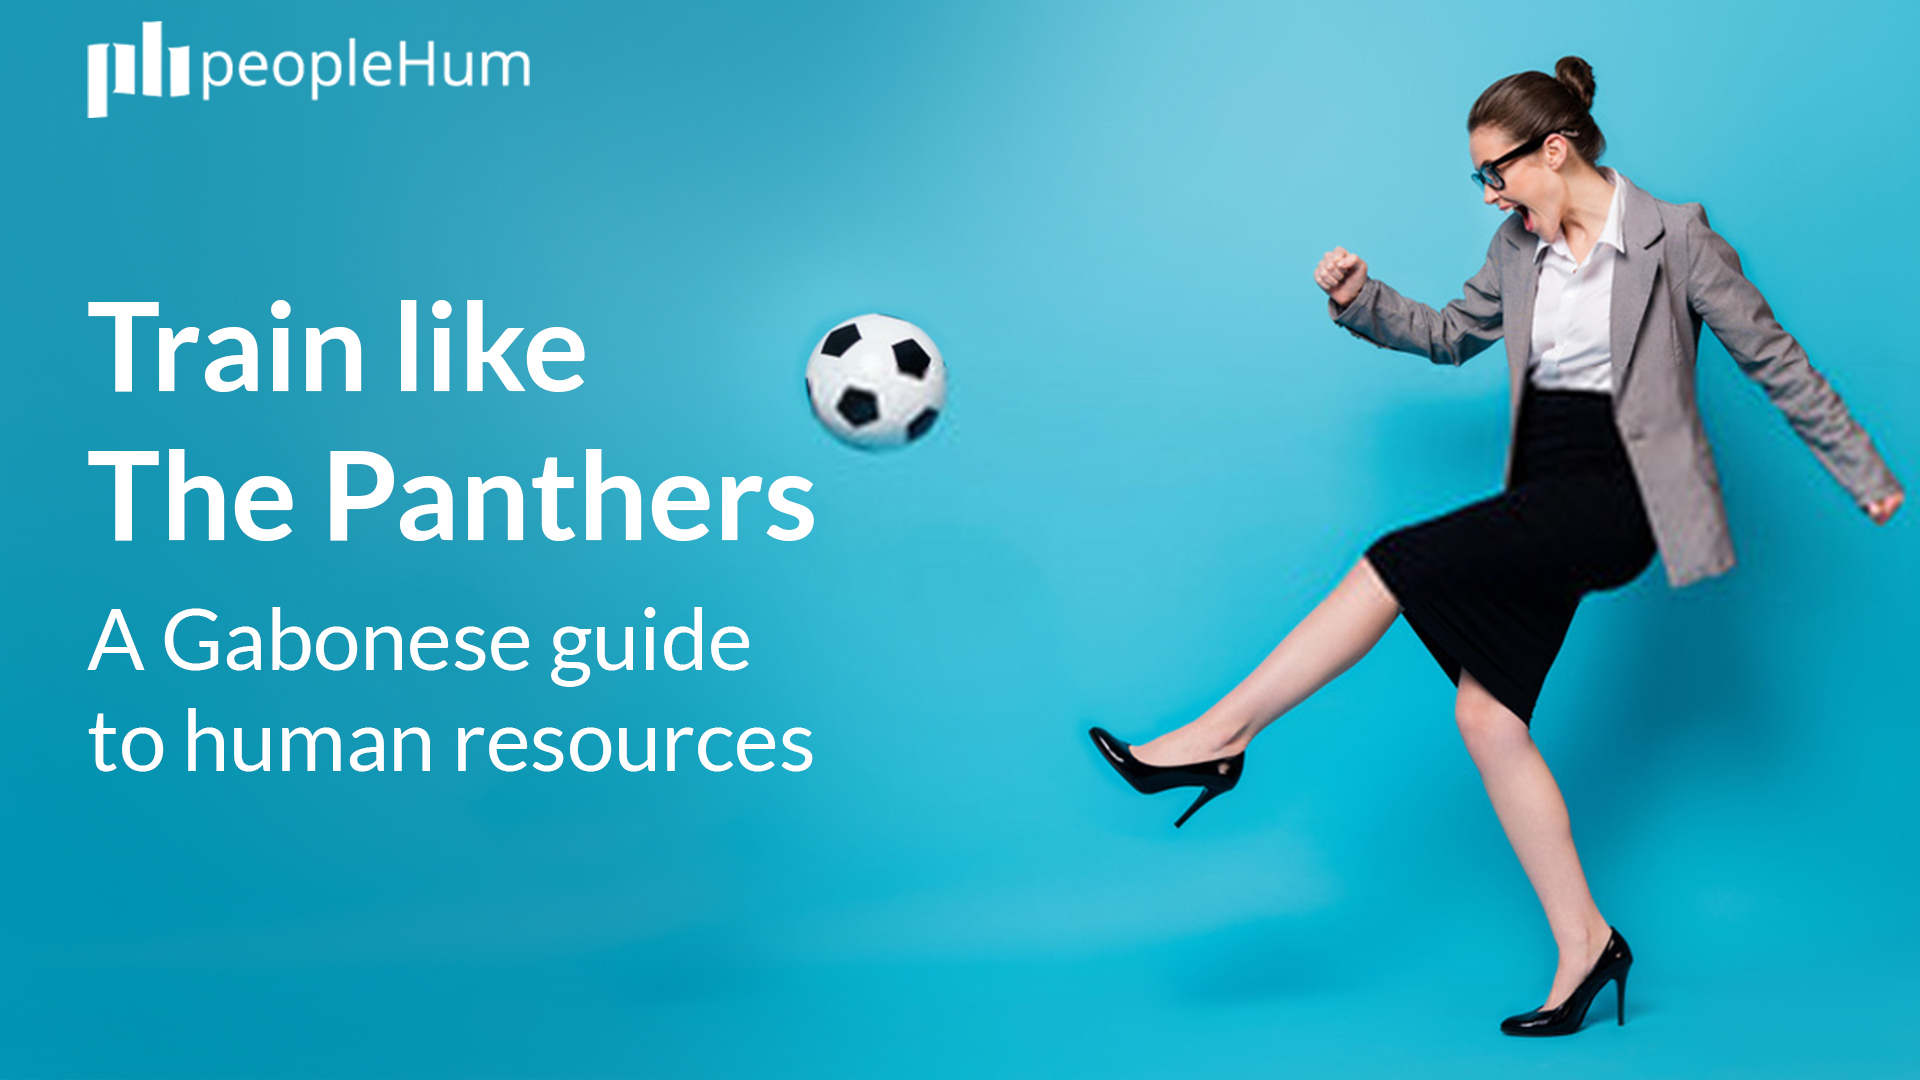 Train like The Panthers - A Gabonese guide to human resources